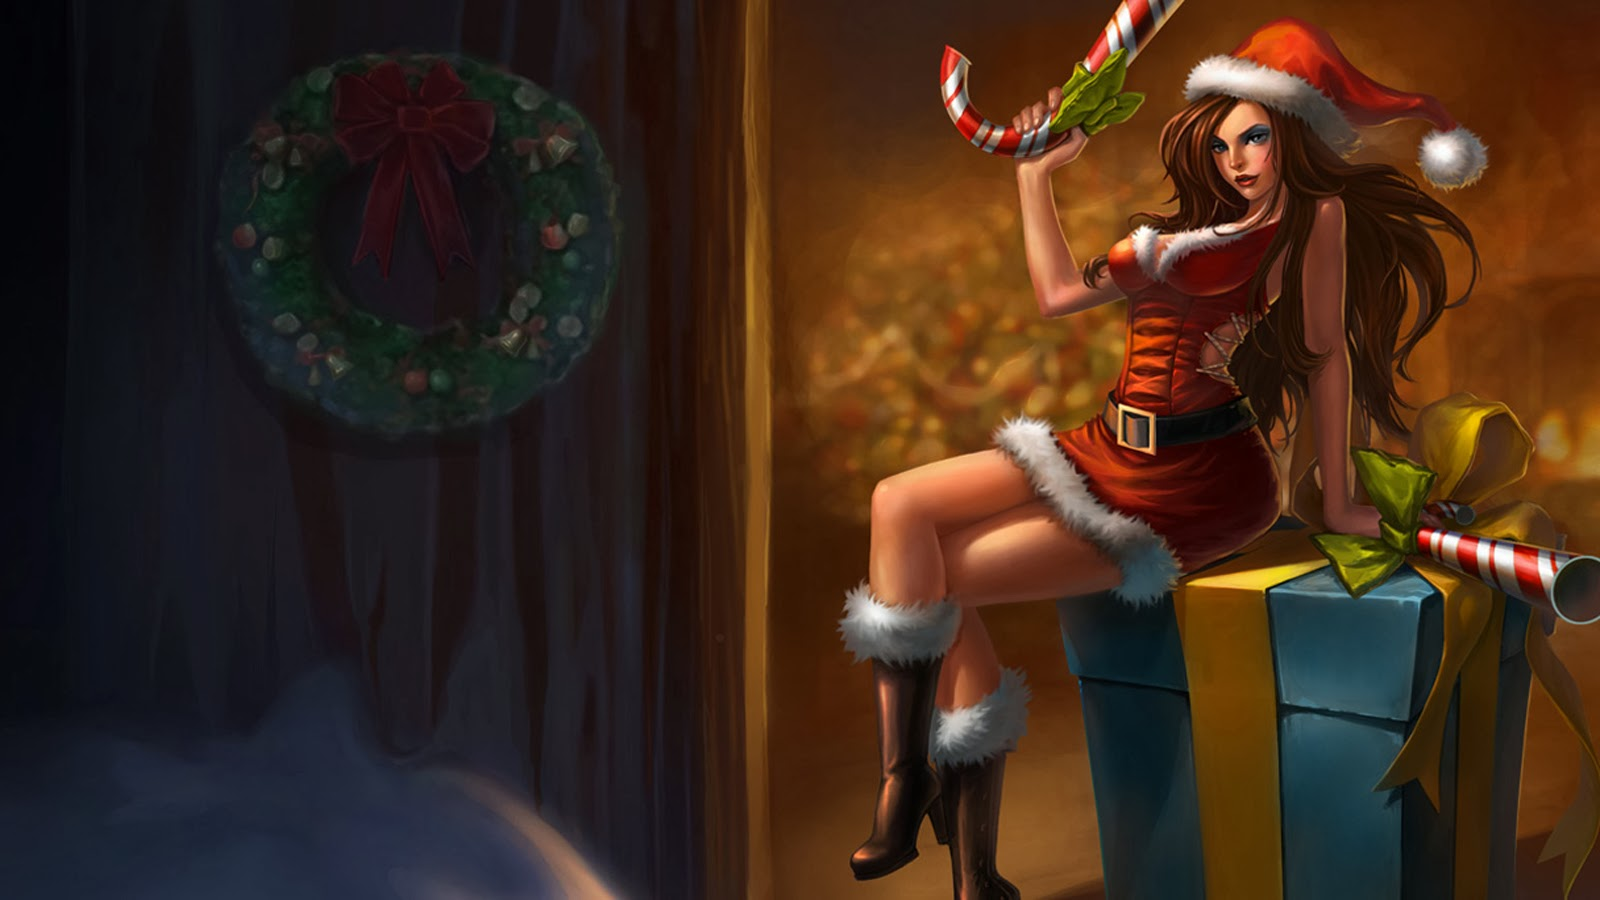 Miss Fortune Christmas Costume LoL a6 Wallpaper HD